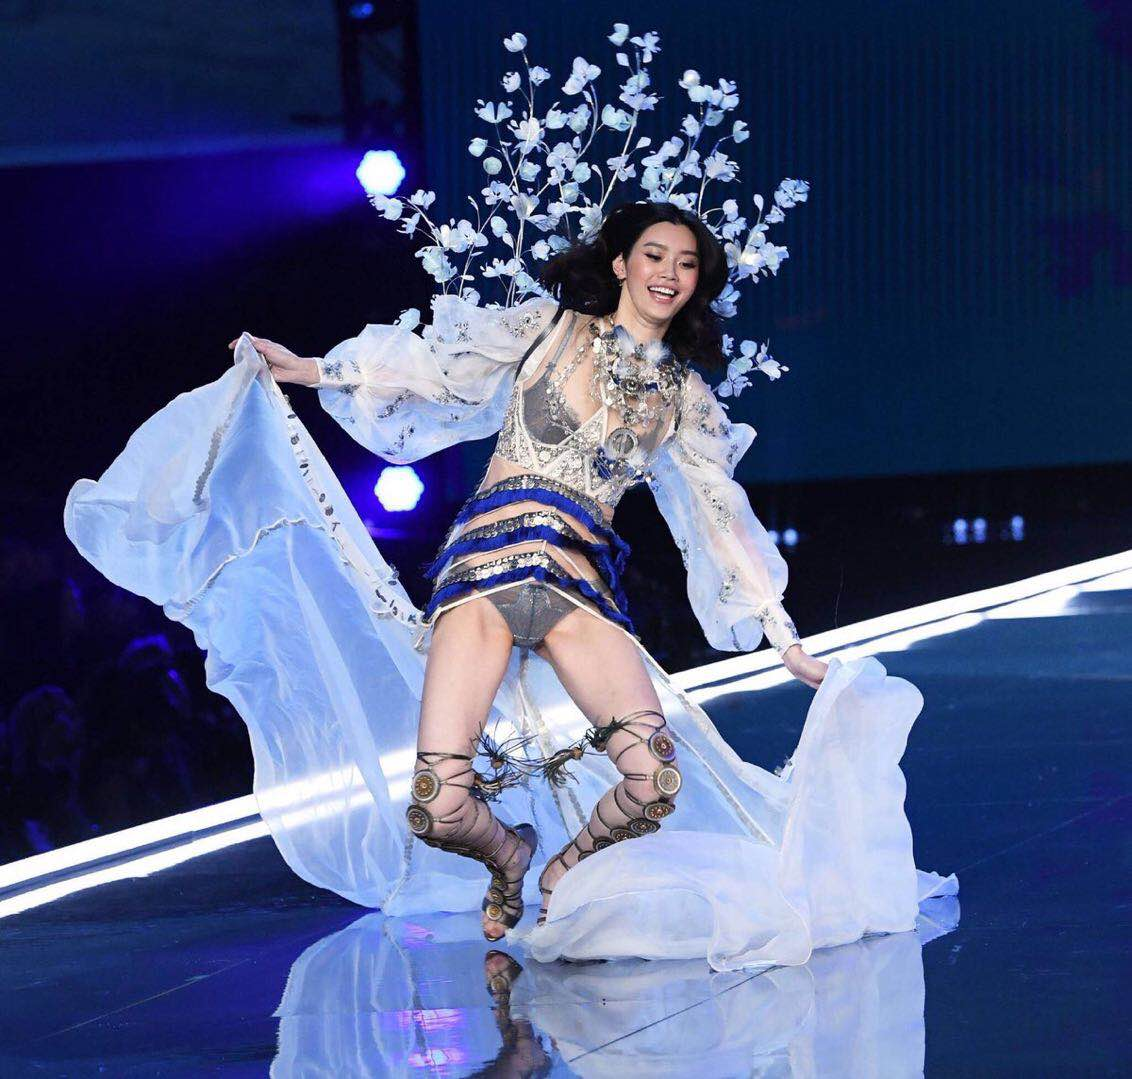 Victoria's Secret angel takes a tumble and wins hearts